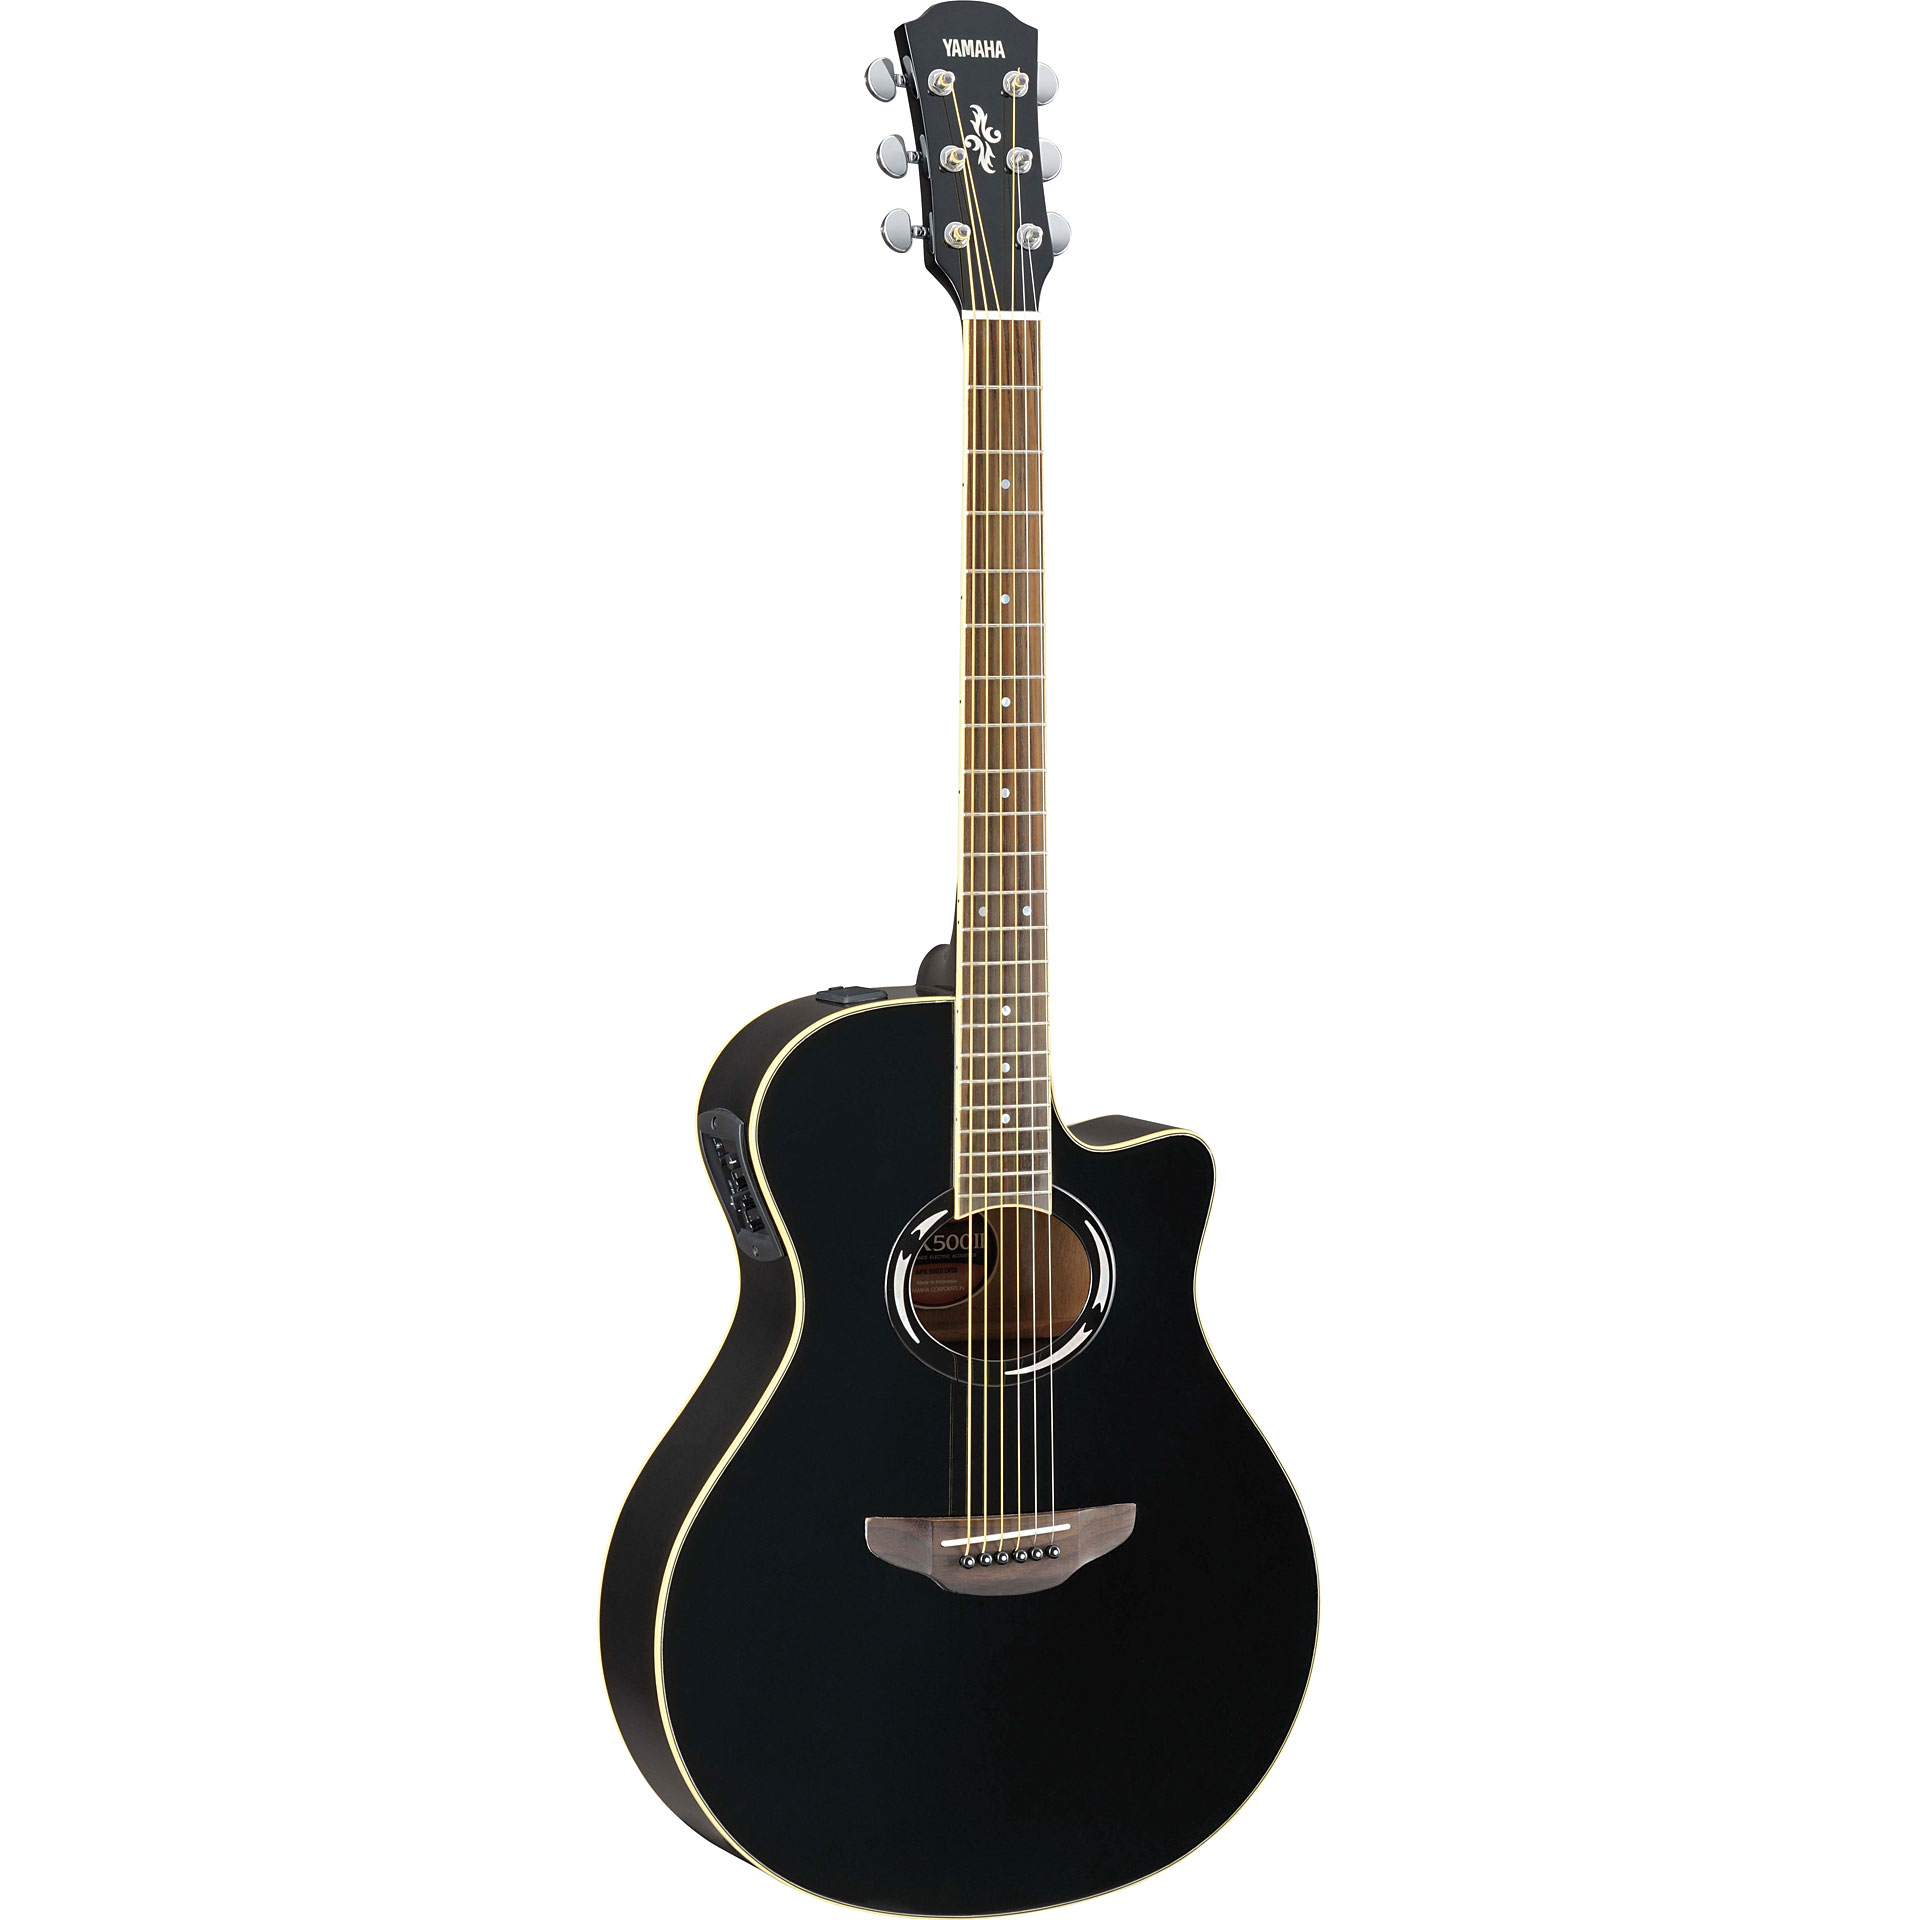 Yamaha apx500iii bl acoustic guitar for Yamaha apx series